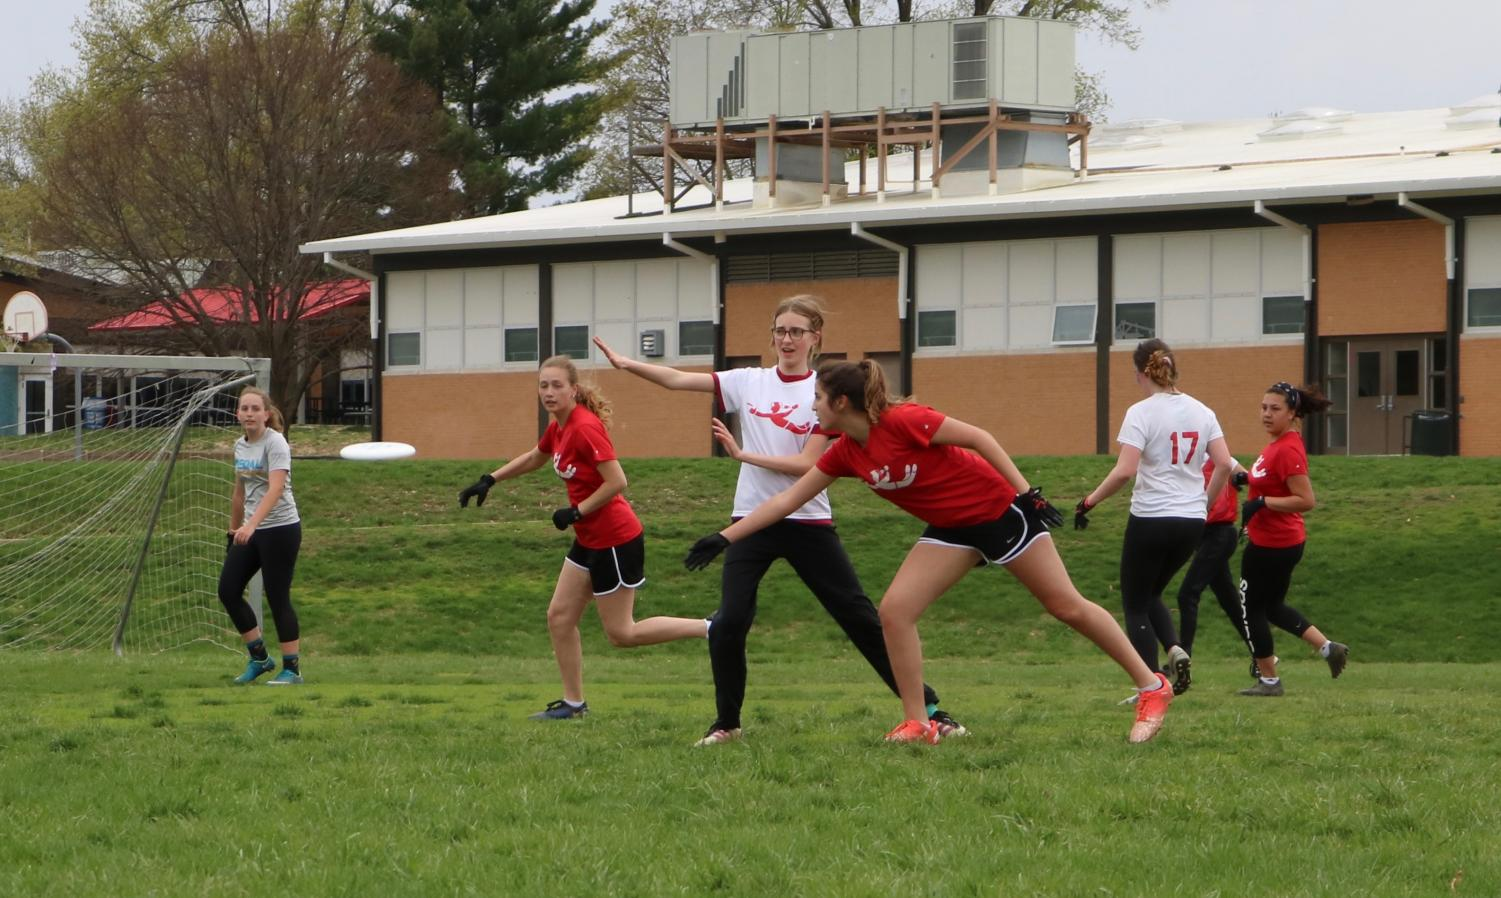 Olivia+Griner%2C+junior%2C+throws+the+disc+to+a+teammate+to+gain+yards+down+the+field.+